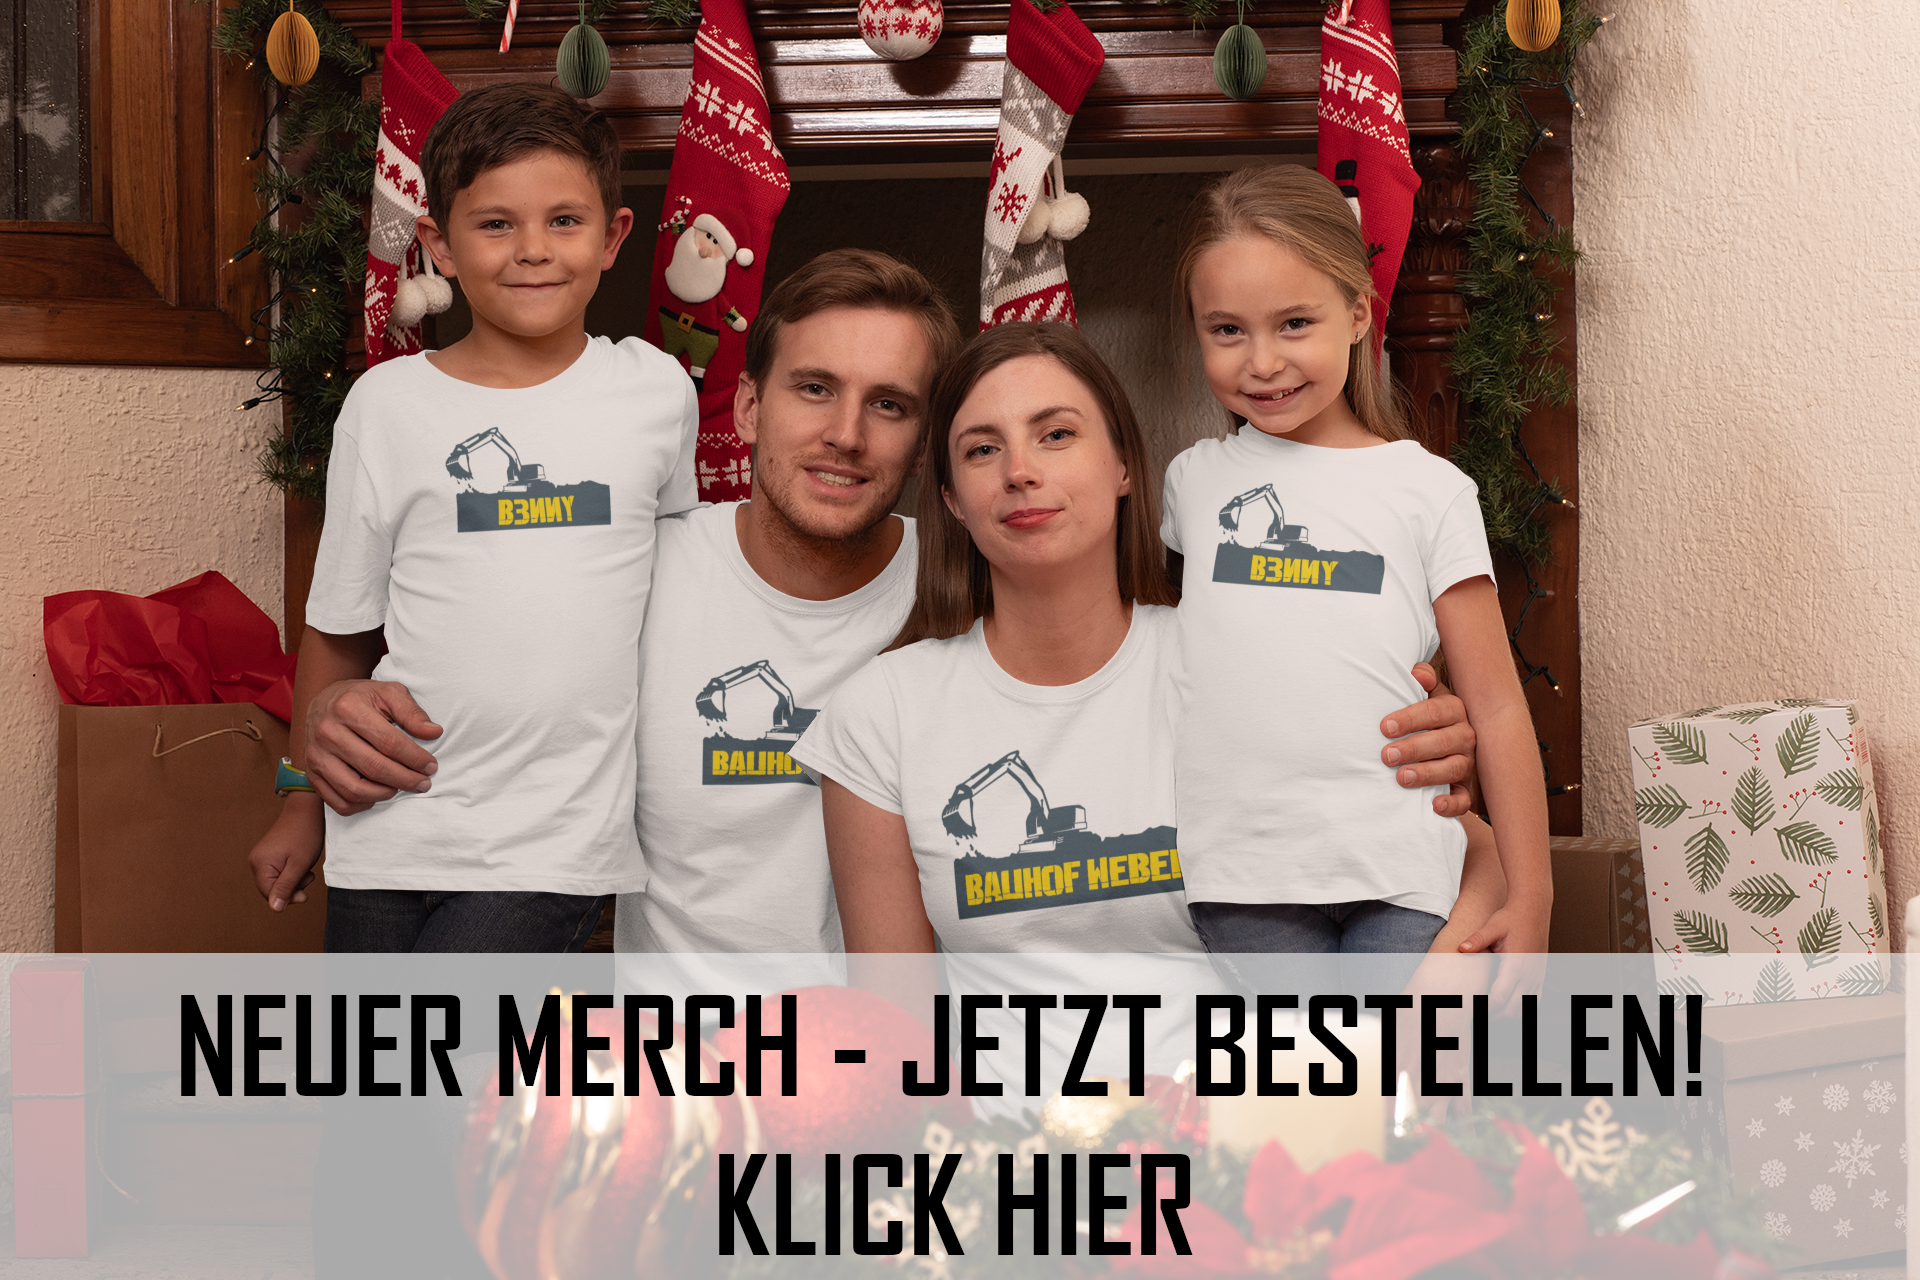 t-shirt-mockup-of-a-family-of-four-celebrating-christmas-30197